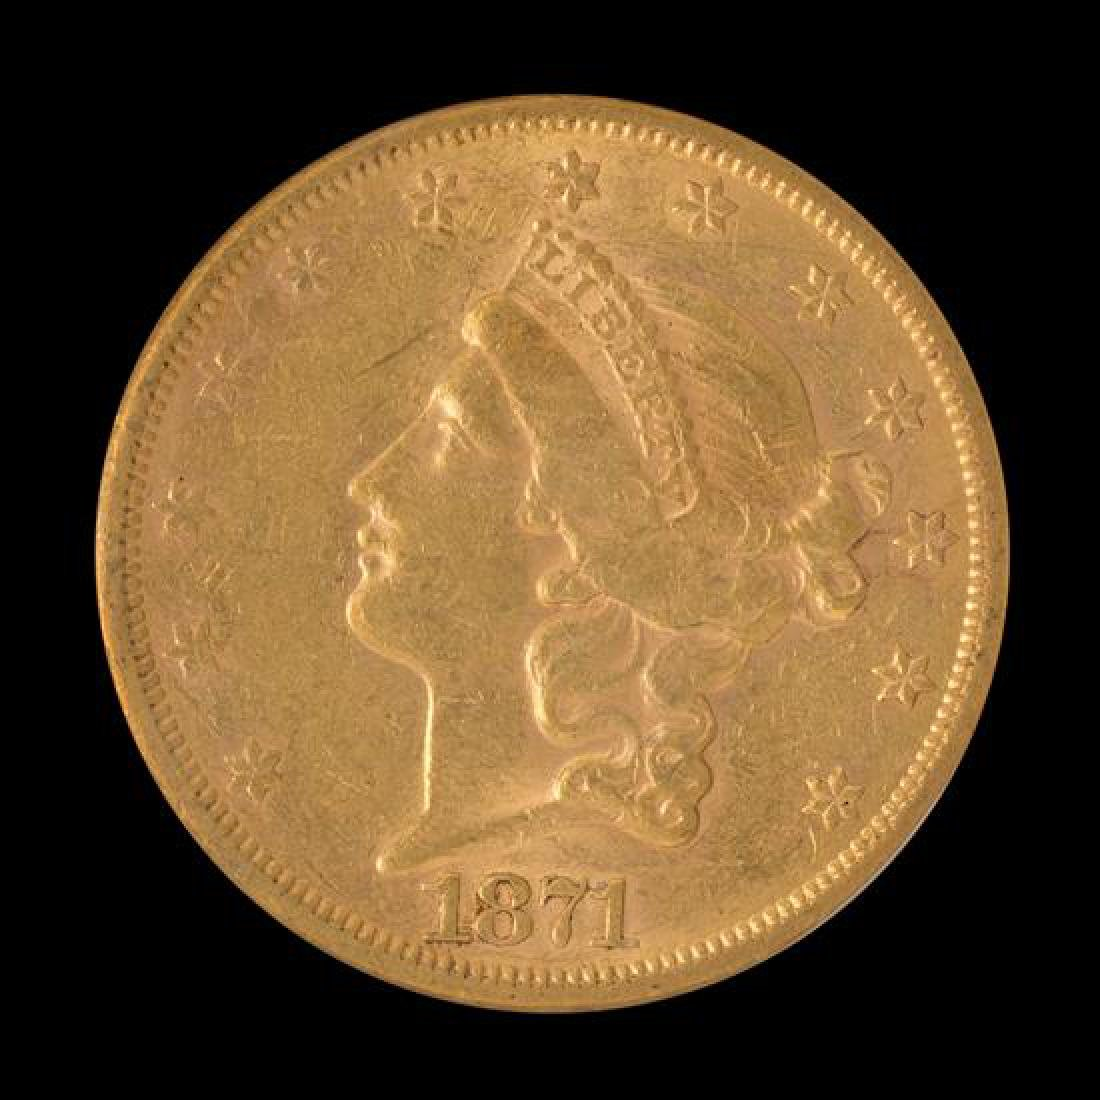 A United States 1871-S Liberty Head $20 Gold Coin